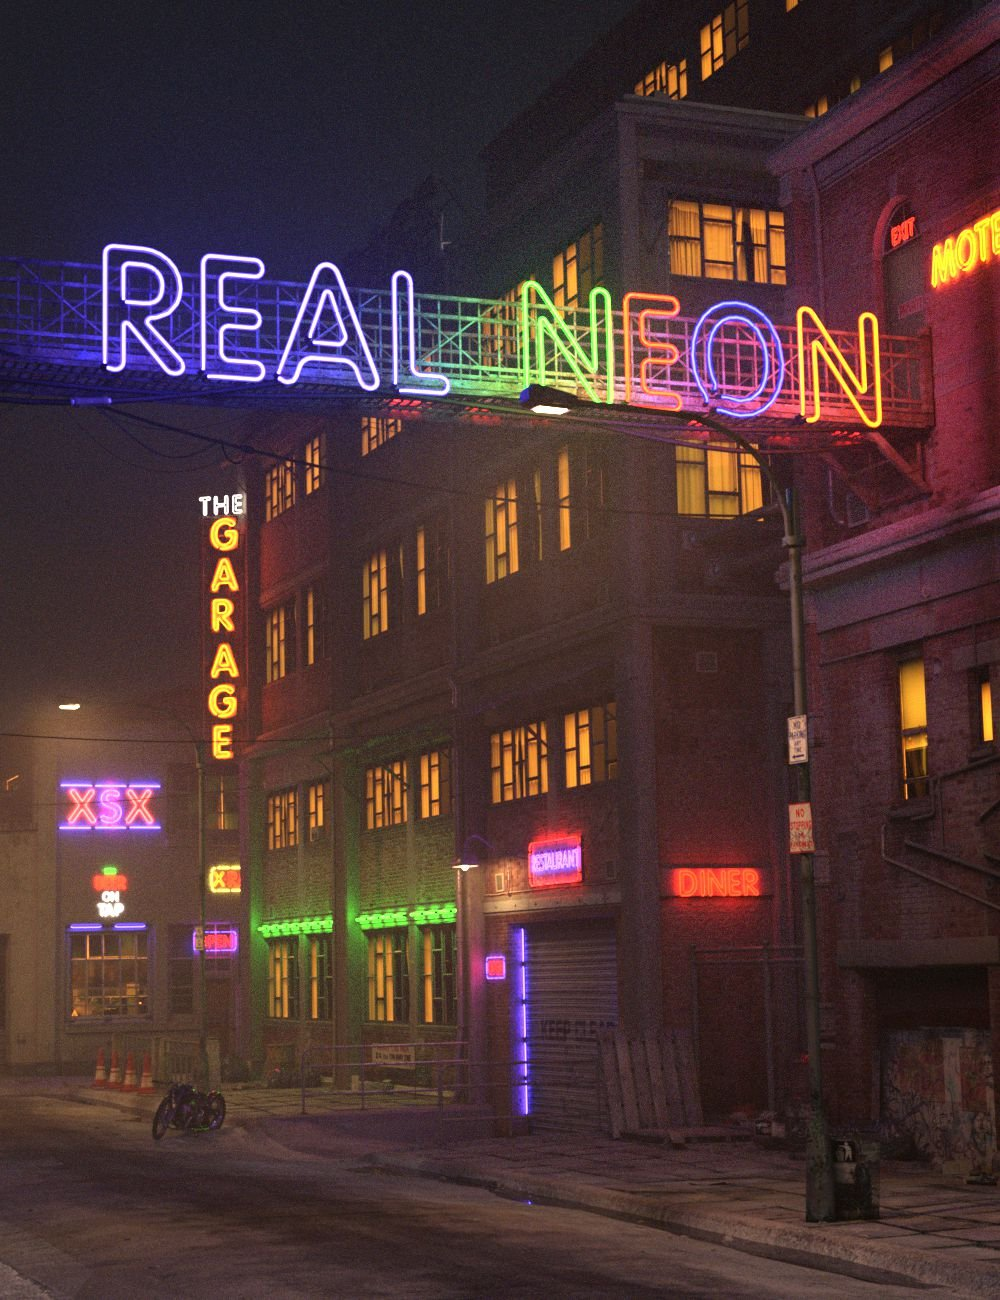 Real Neon Letters by: DzFire, 3D Models by Daz 3D